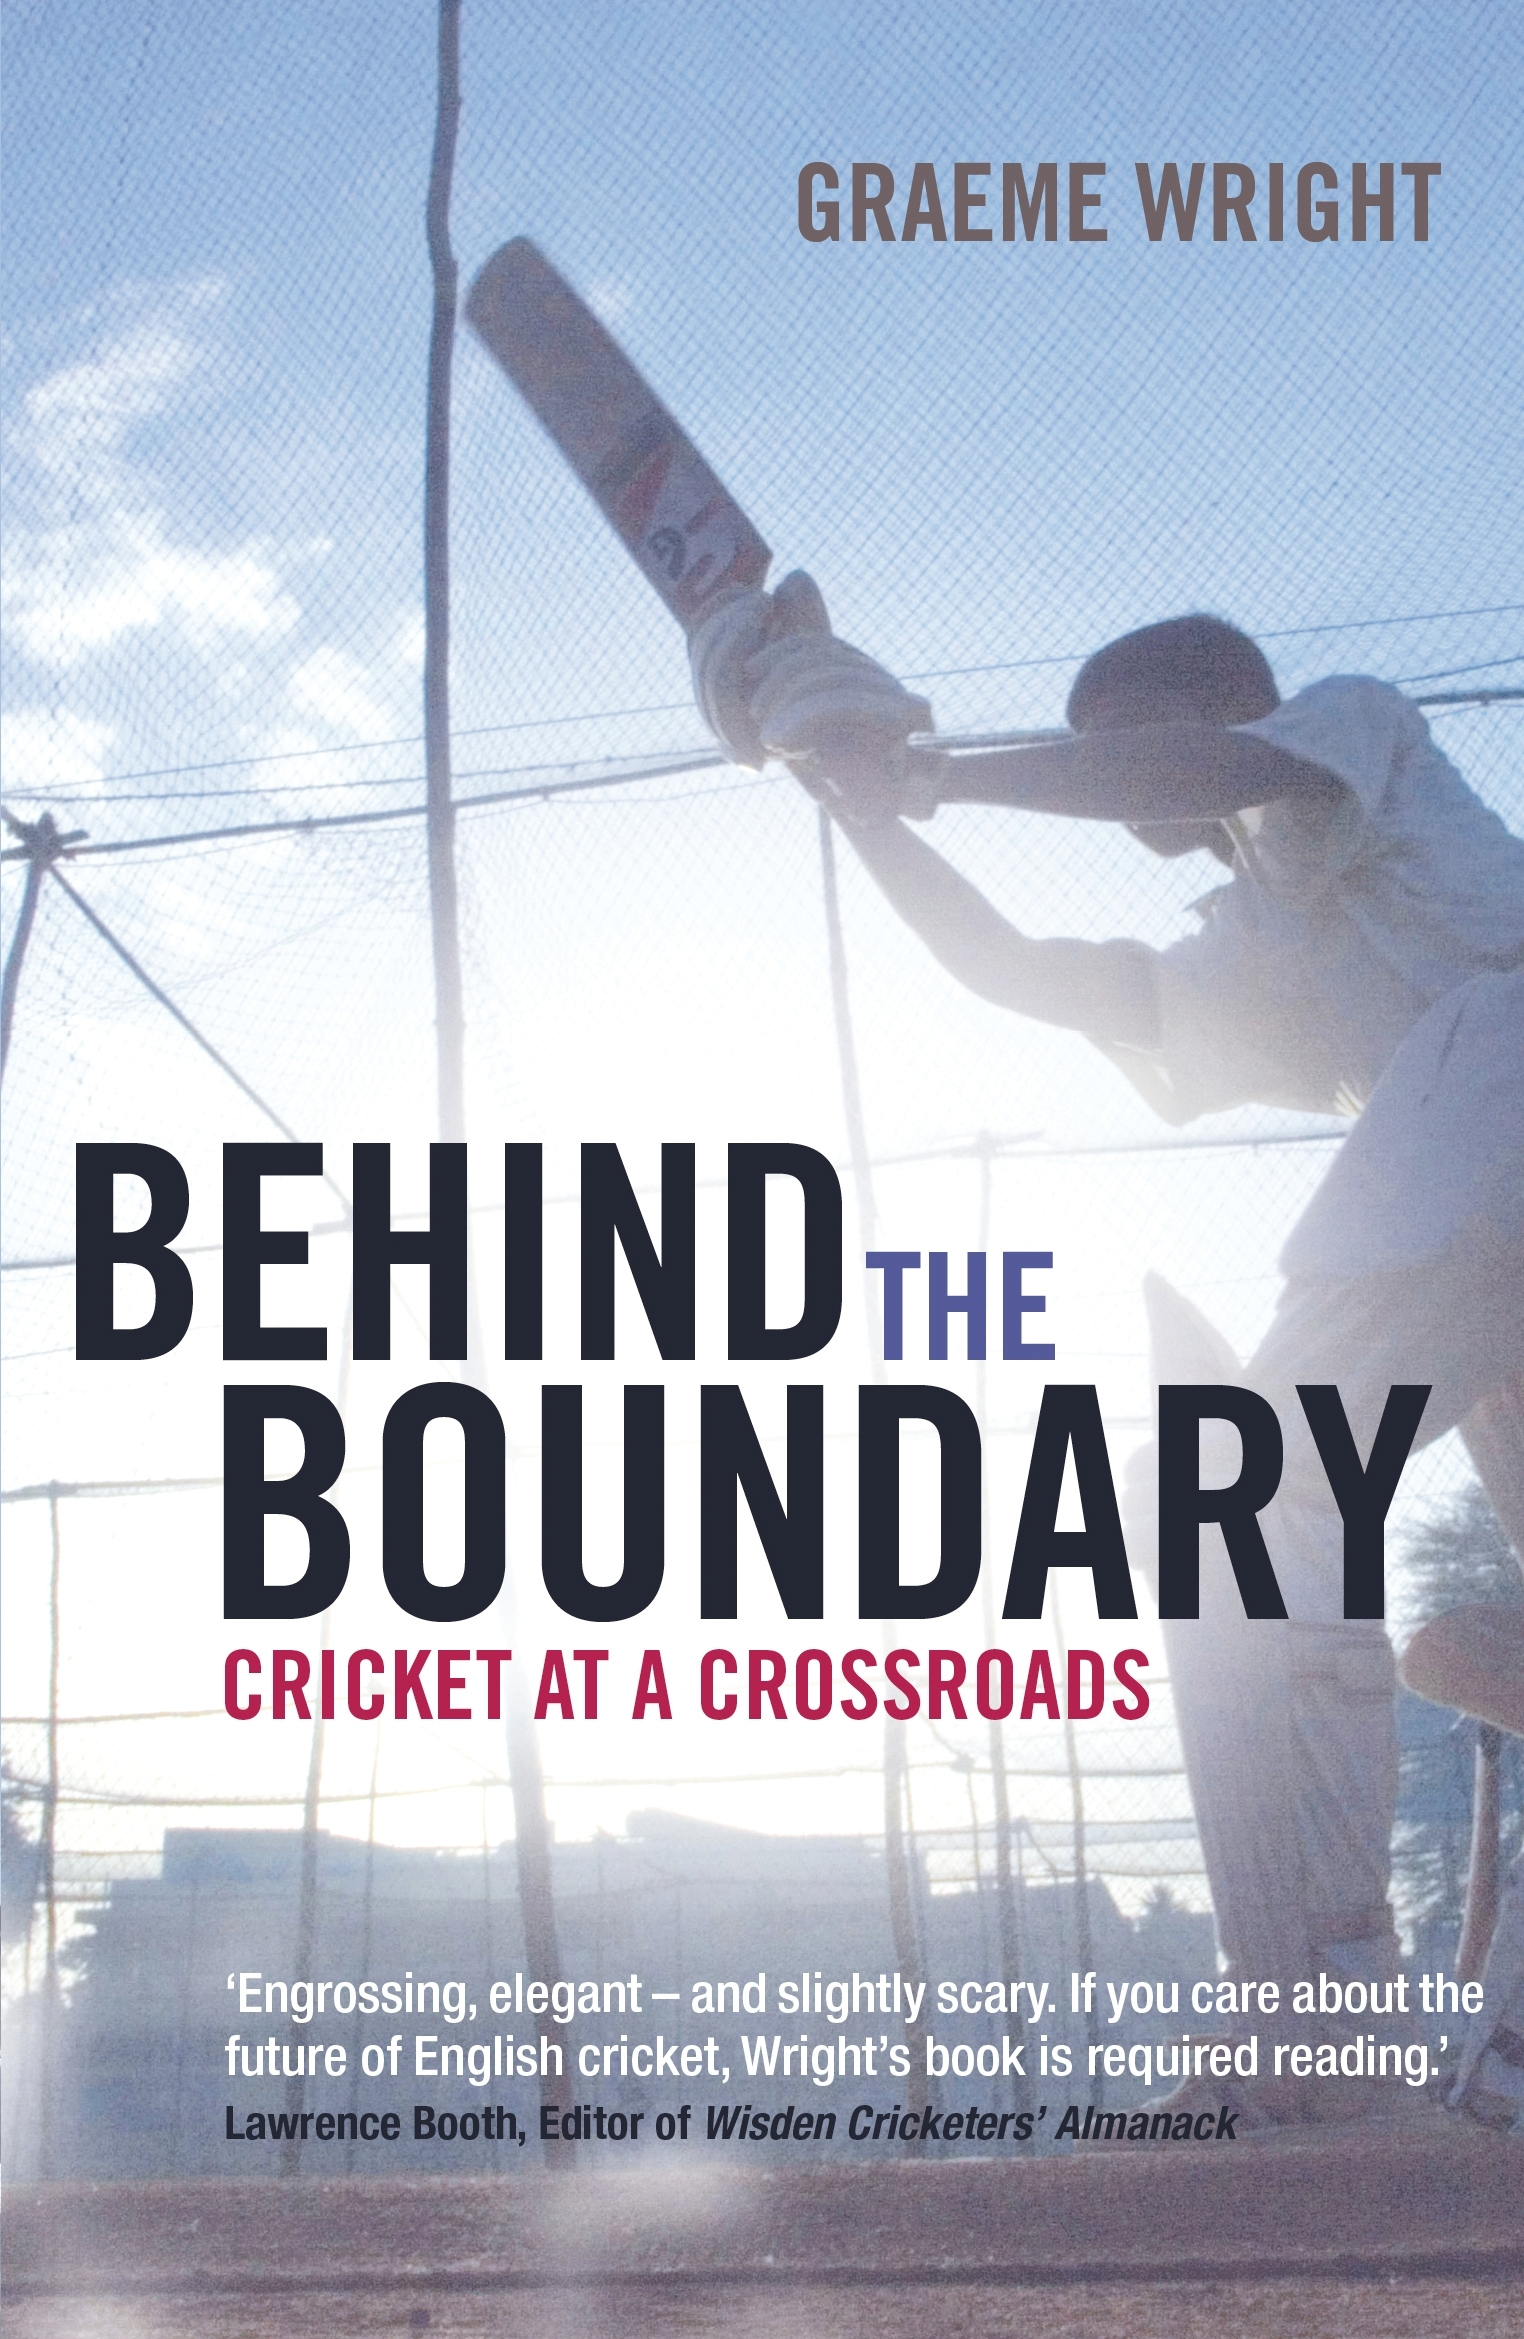 Behind the Boundary Cricket at a crossroads